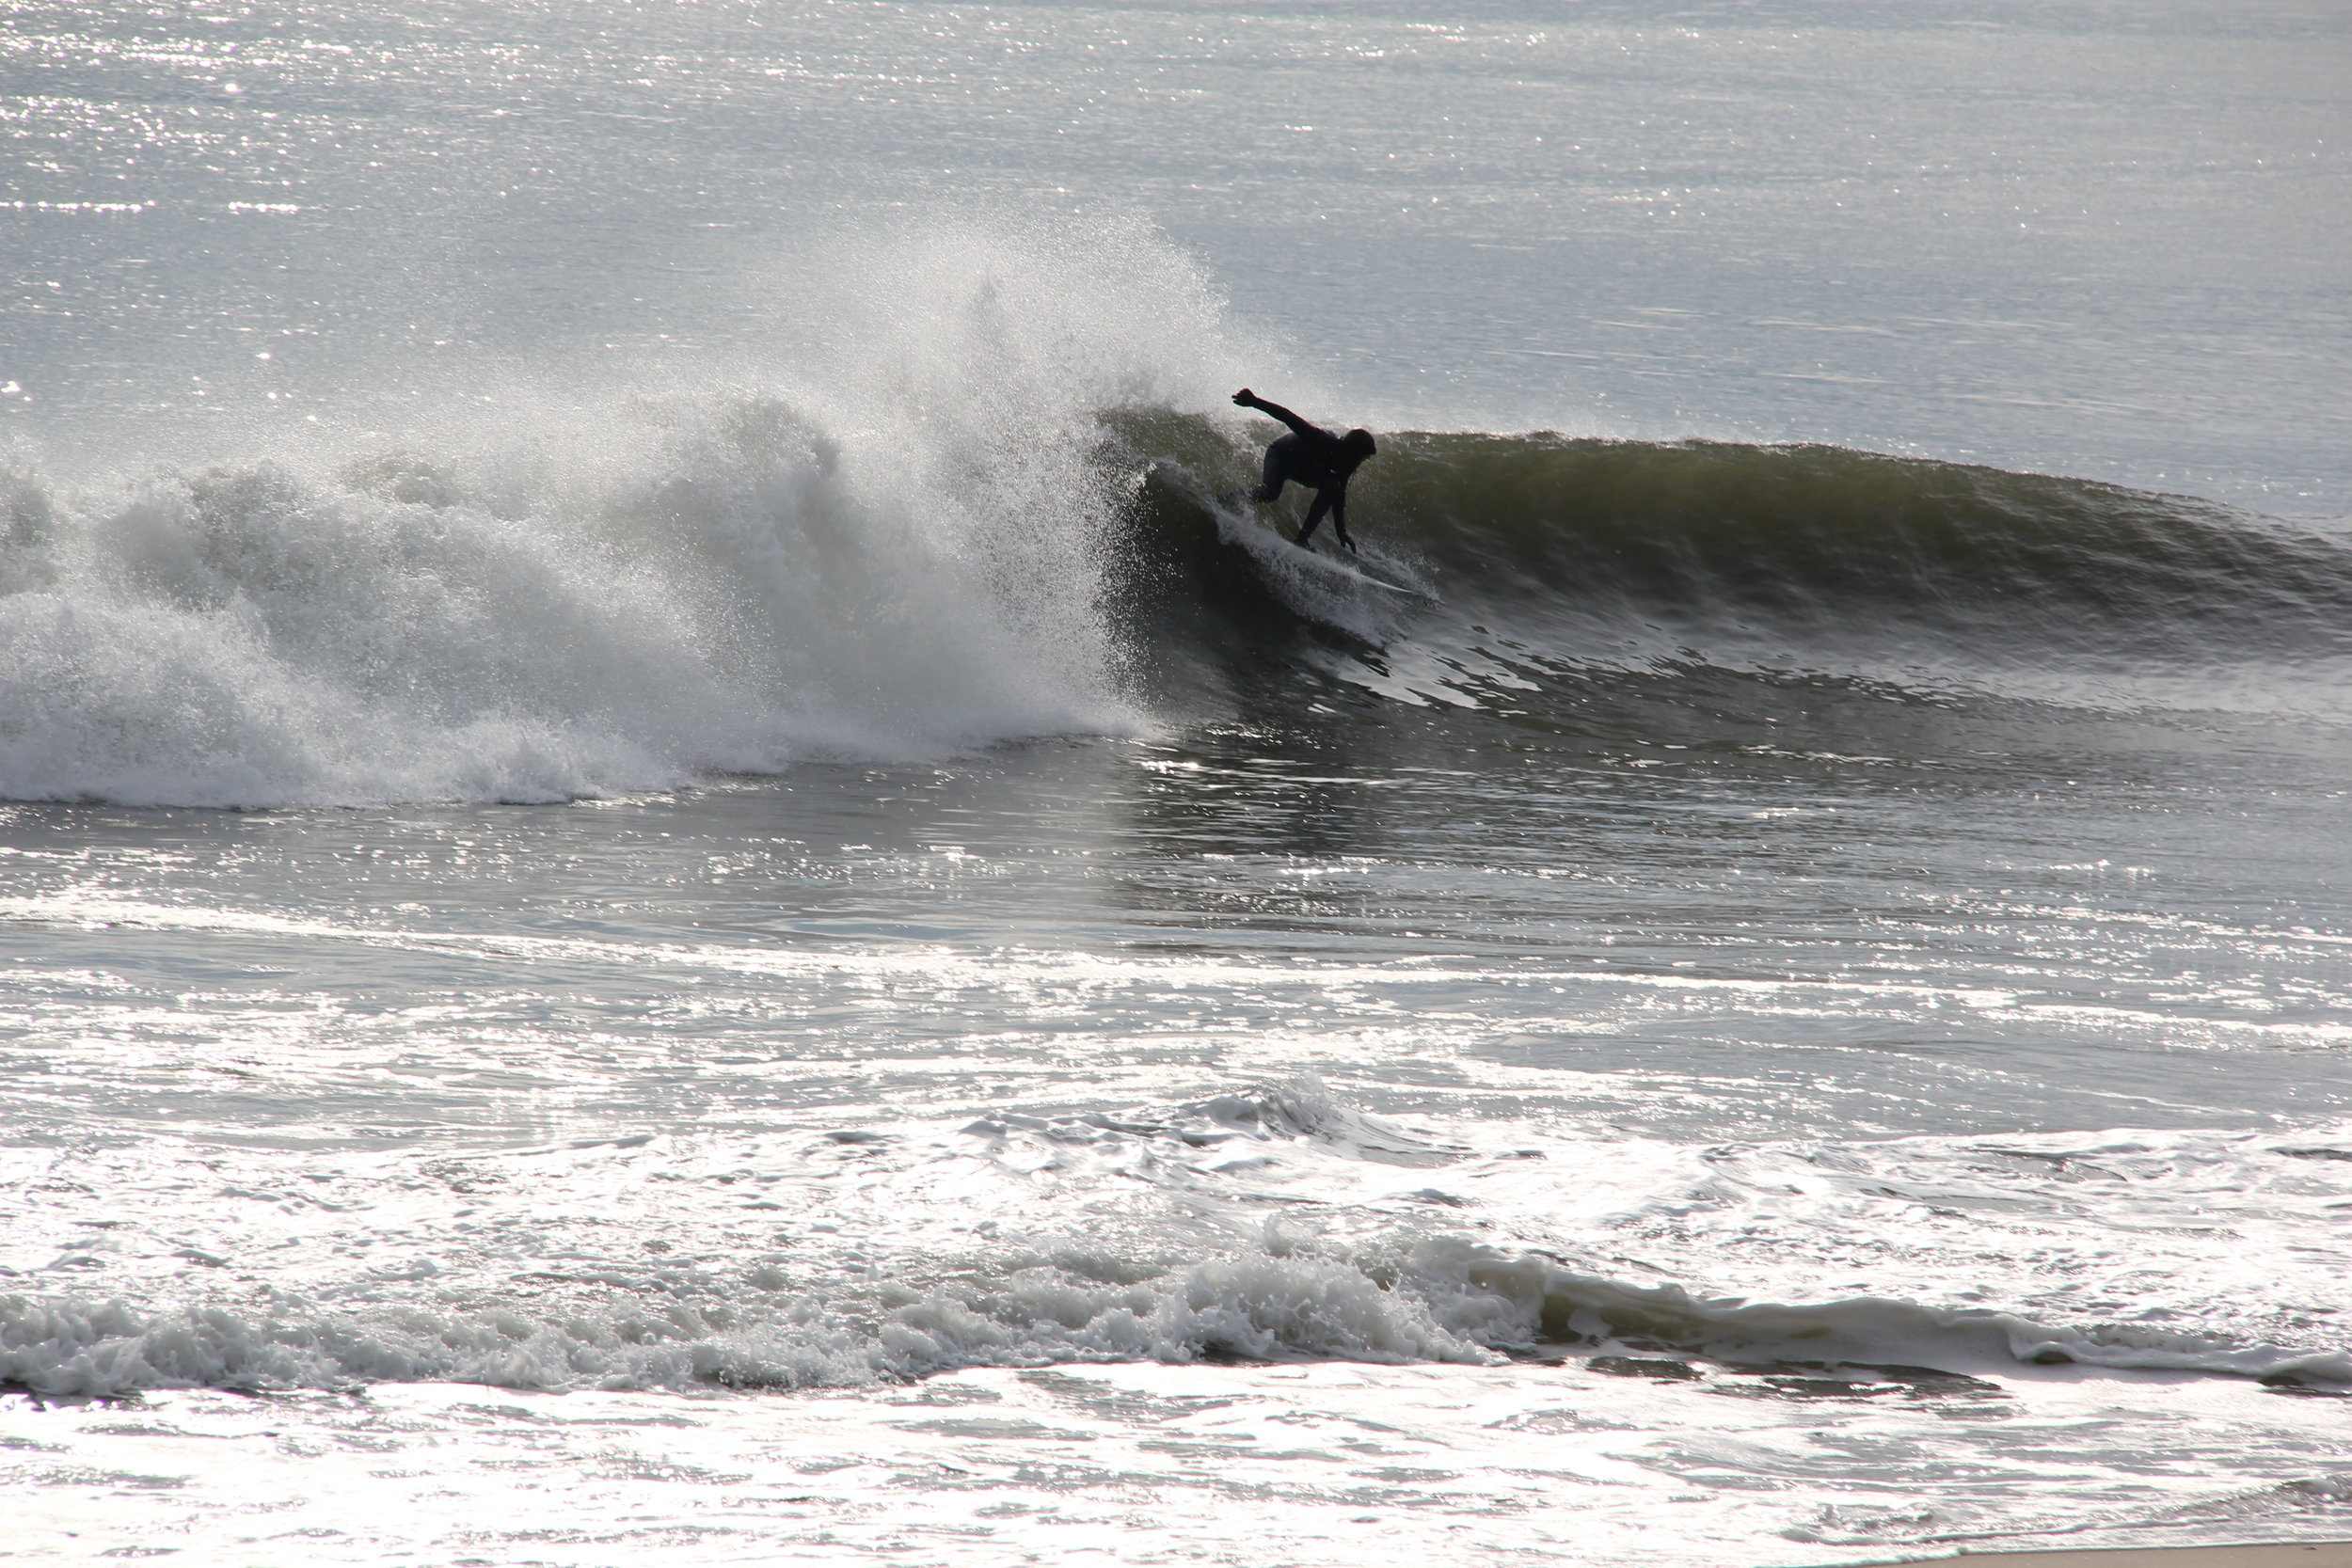 Surfing in Sagaponack after major snowstorm - January 2016